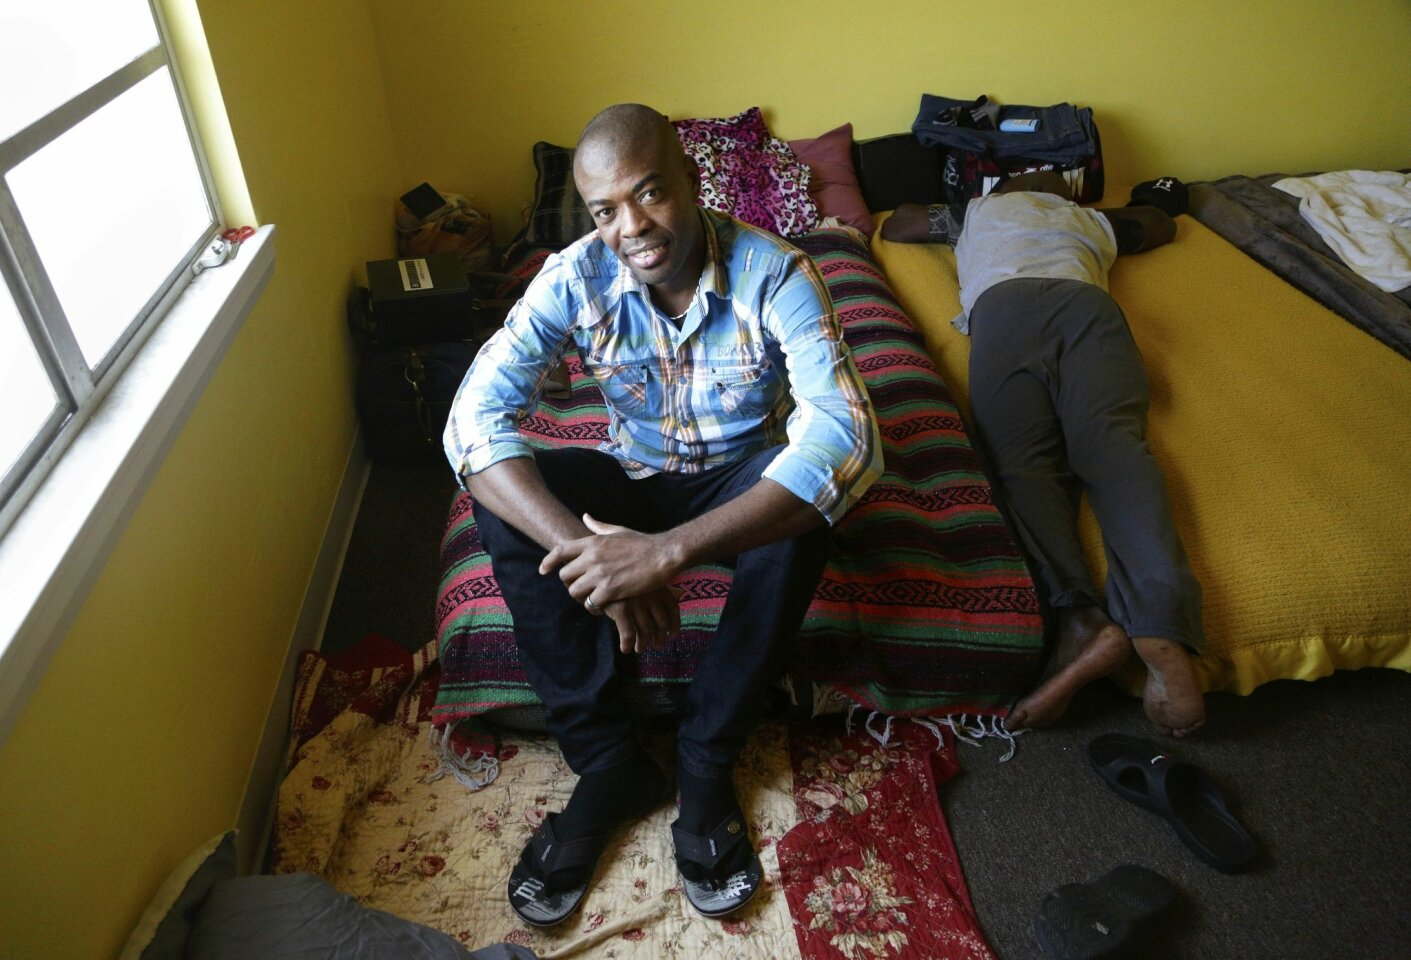 Haitians in transit find temporary shelter